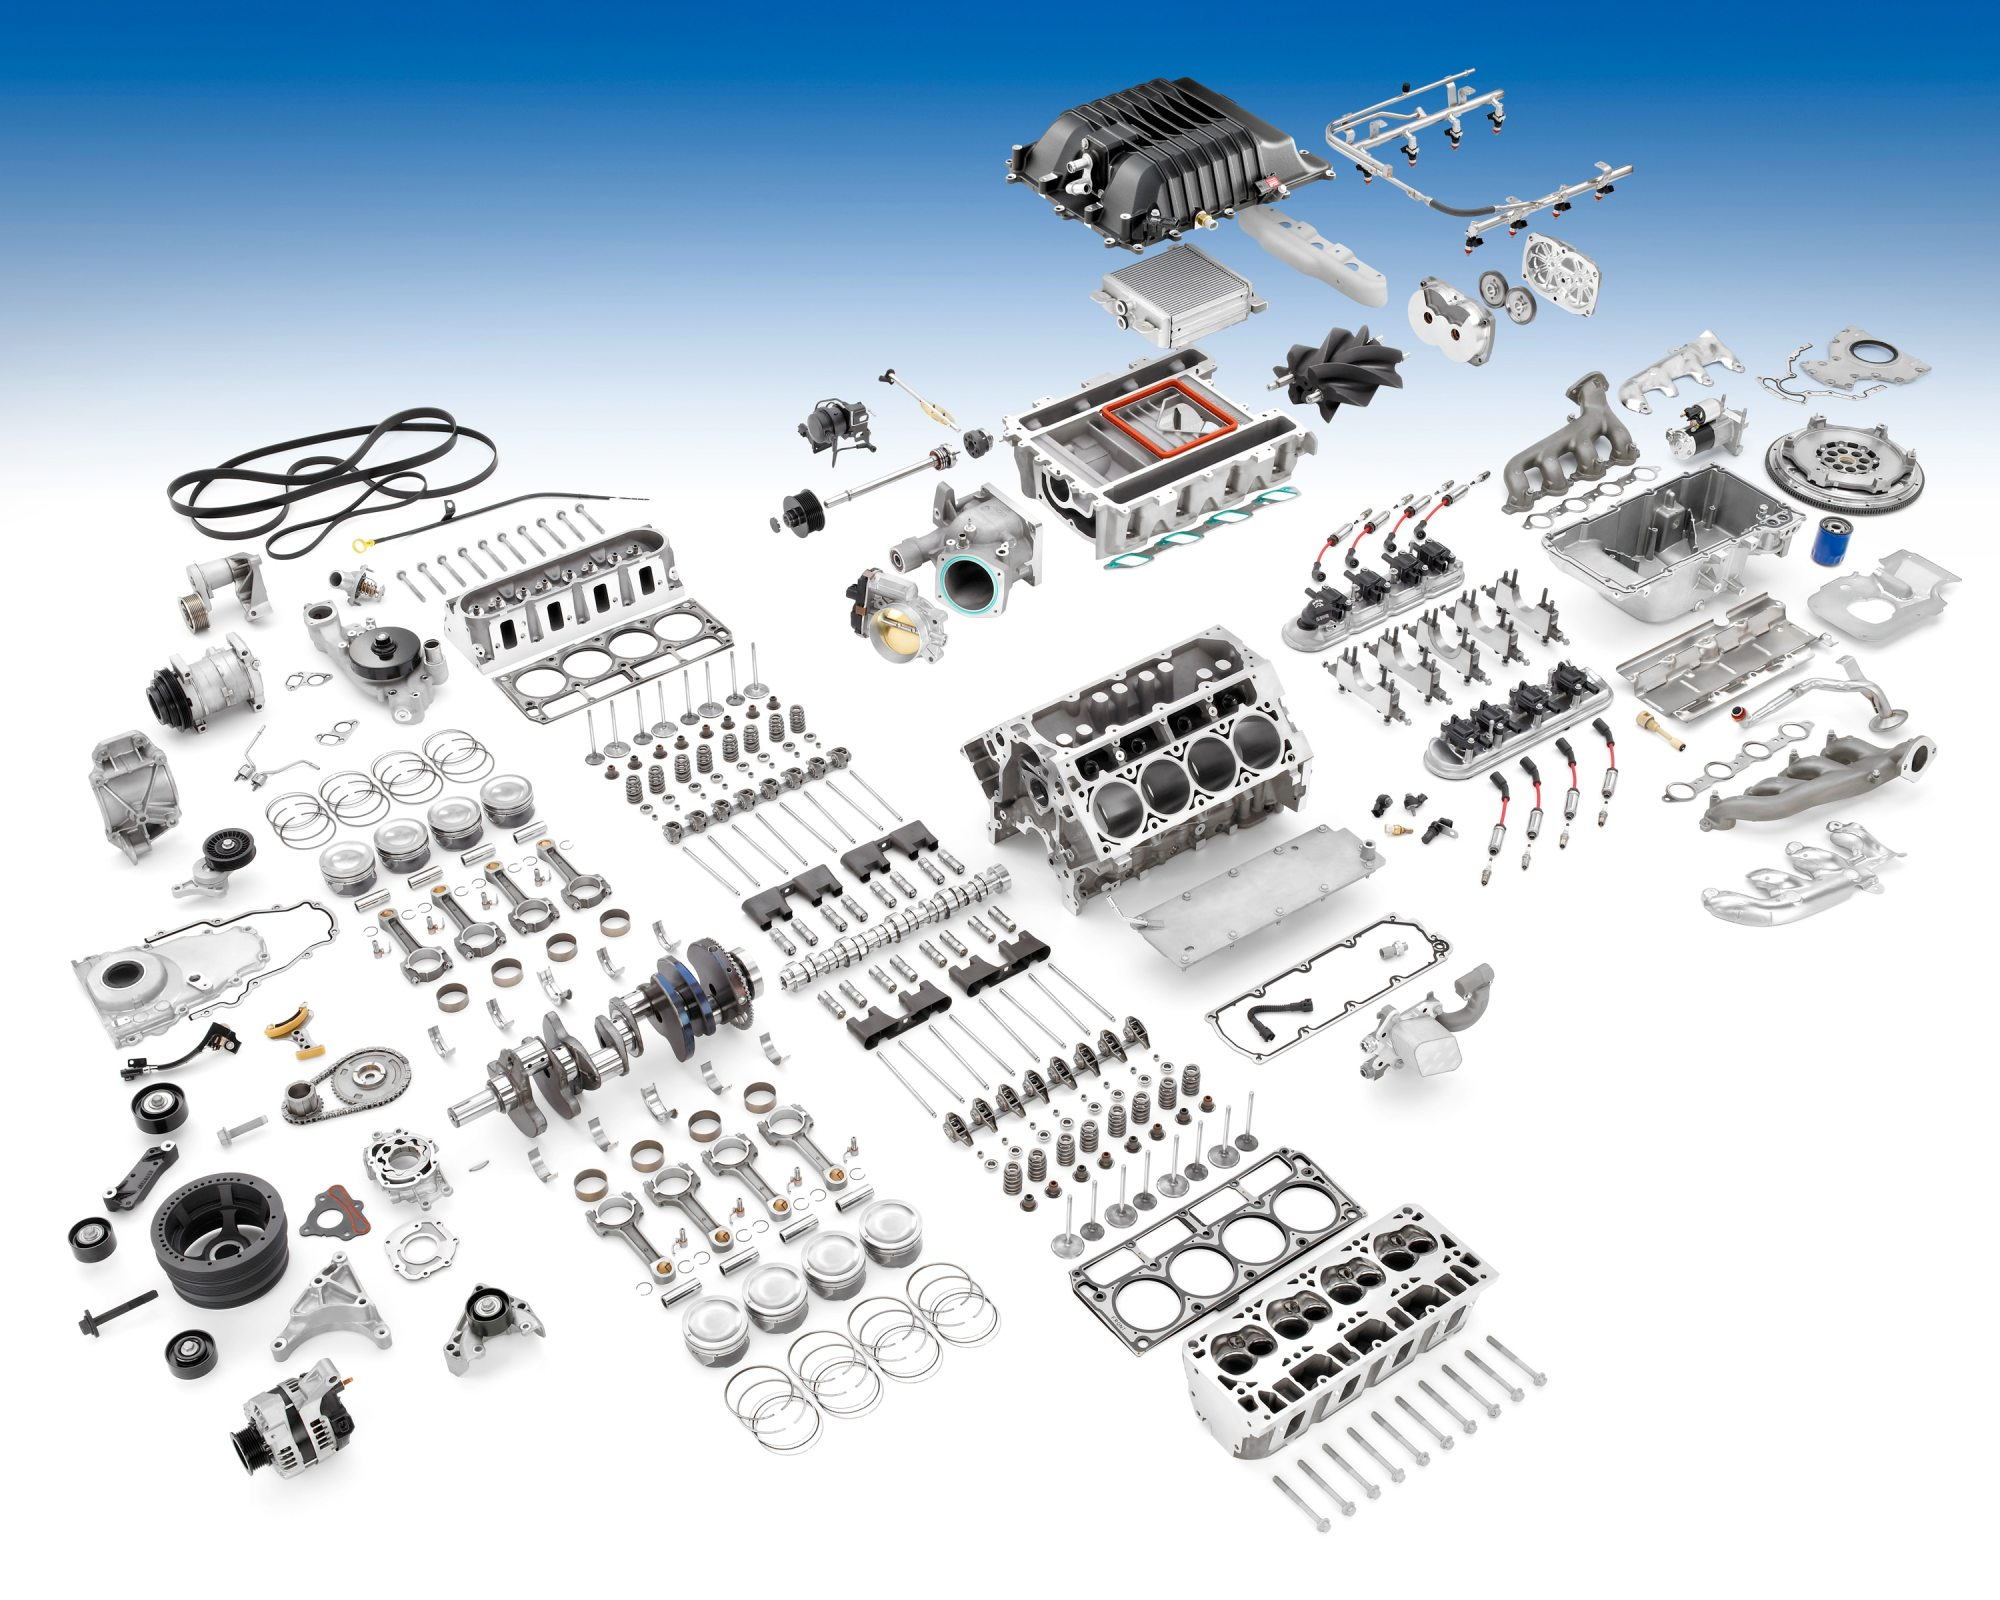 hight resolution of 2012 camaro zl1 features technically advanced 6 2l supercharged v 8 camaro cylinder head engine parts diagram car parts diagram